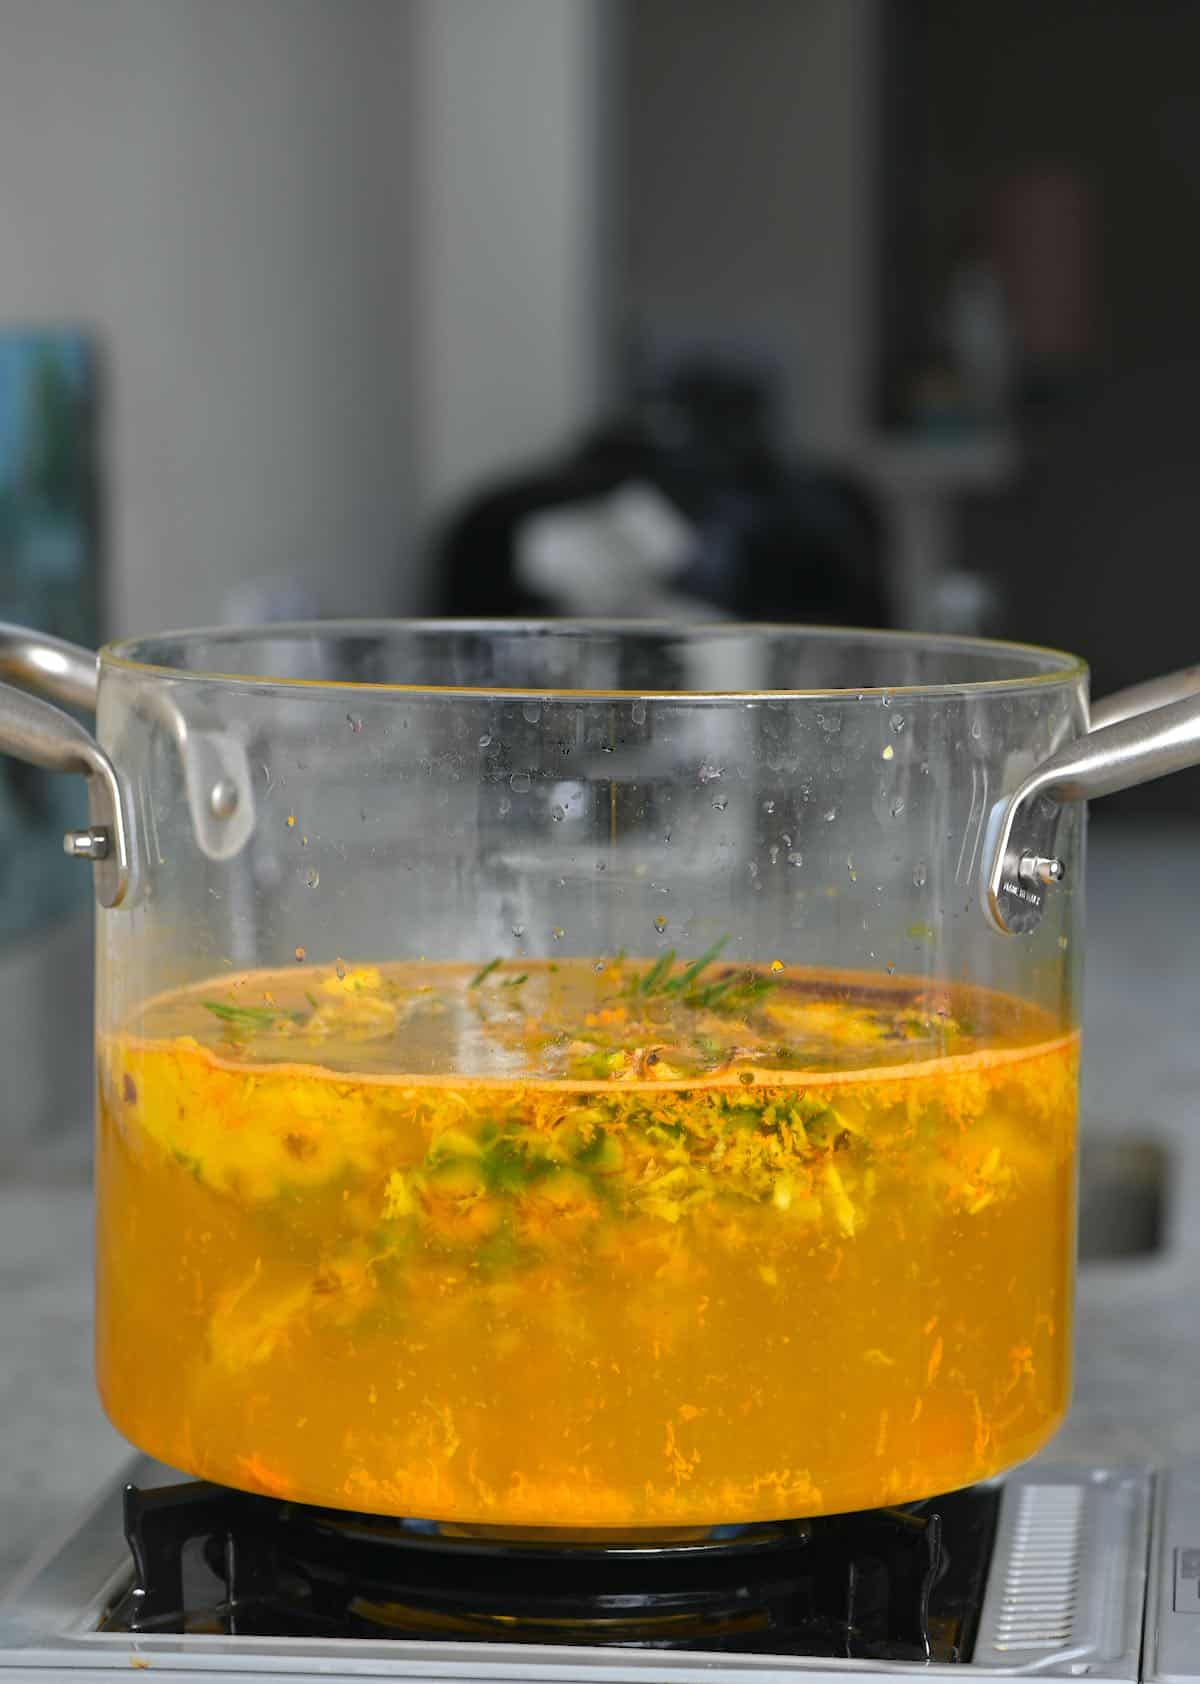 A large glass pot with pineapple peel tea